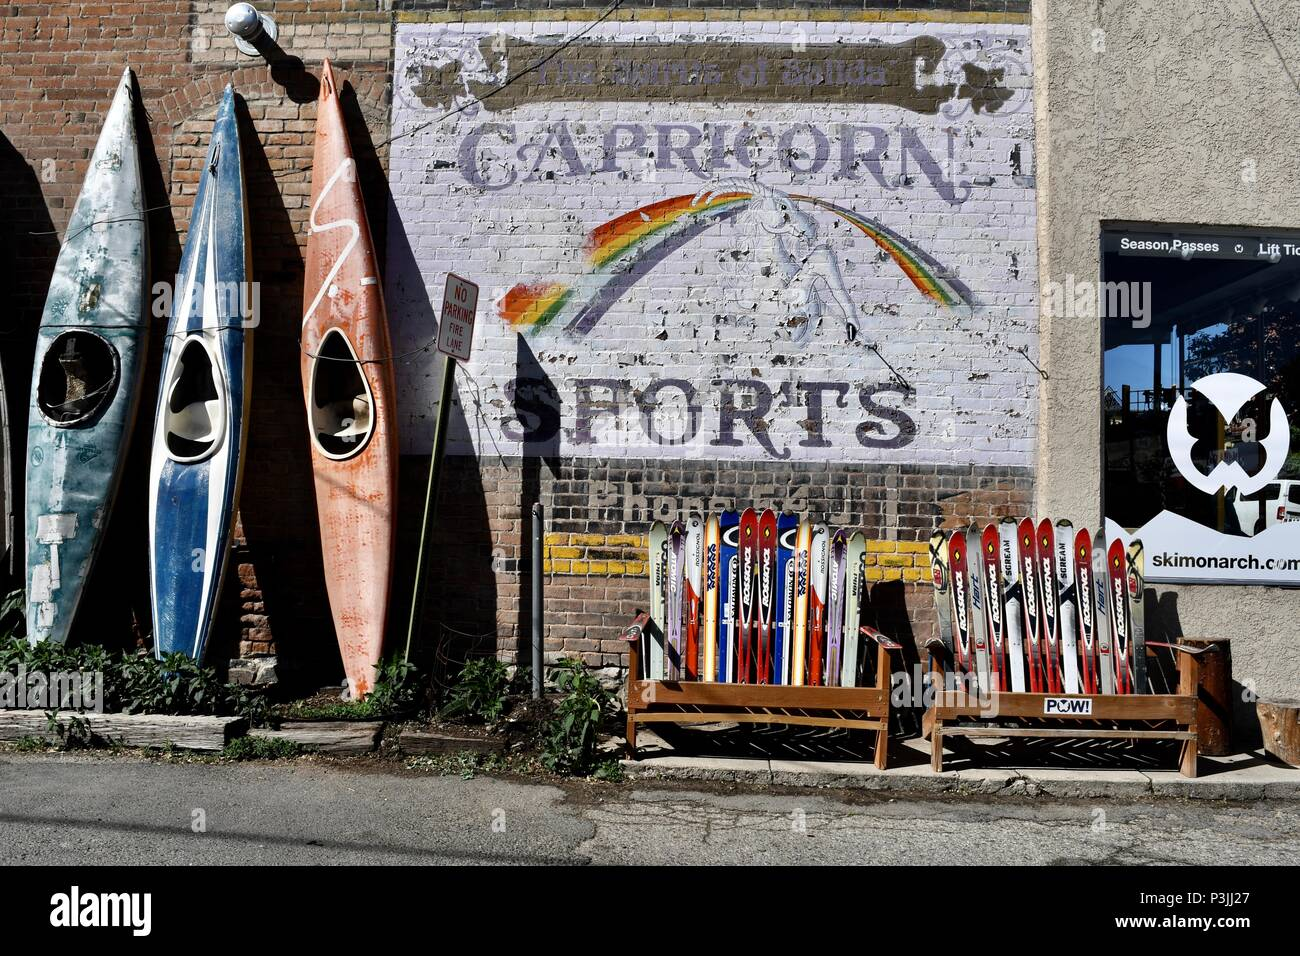 Painted wall advertisement in Salida, advertising Capricorn Sports - Stock Image